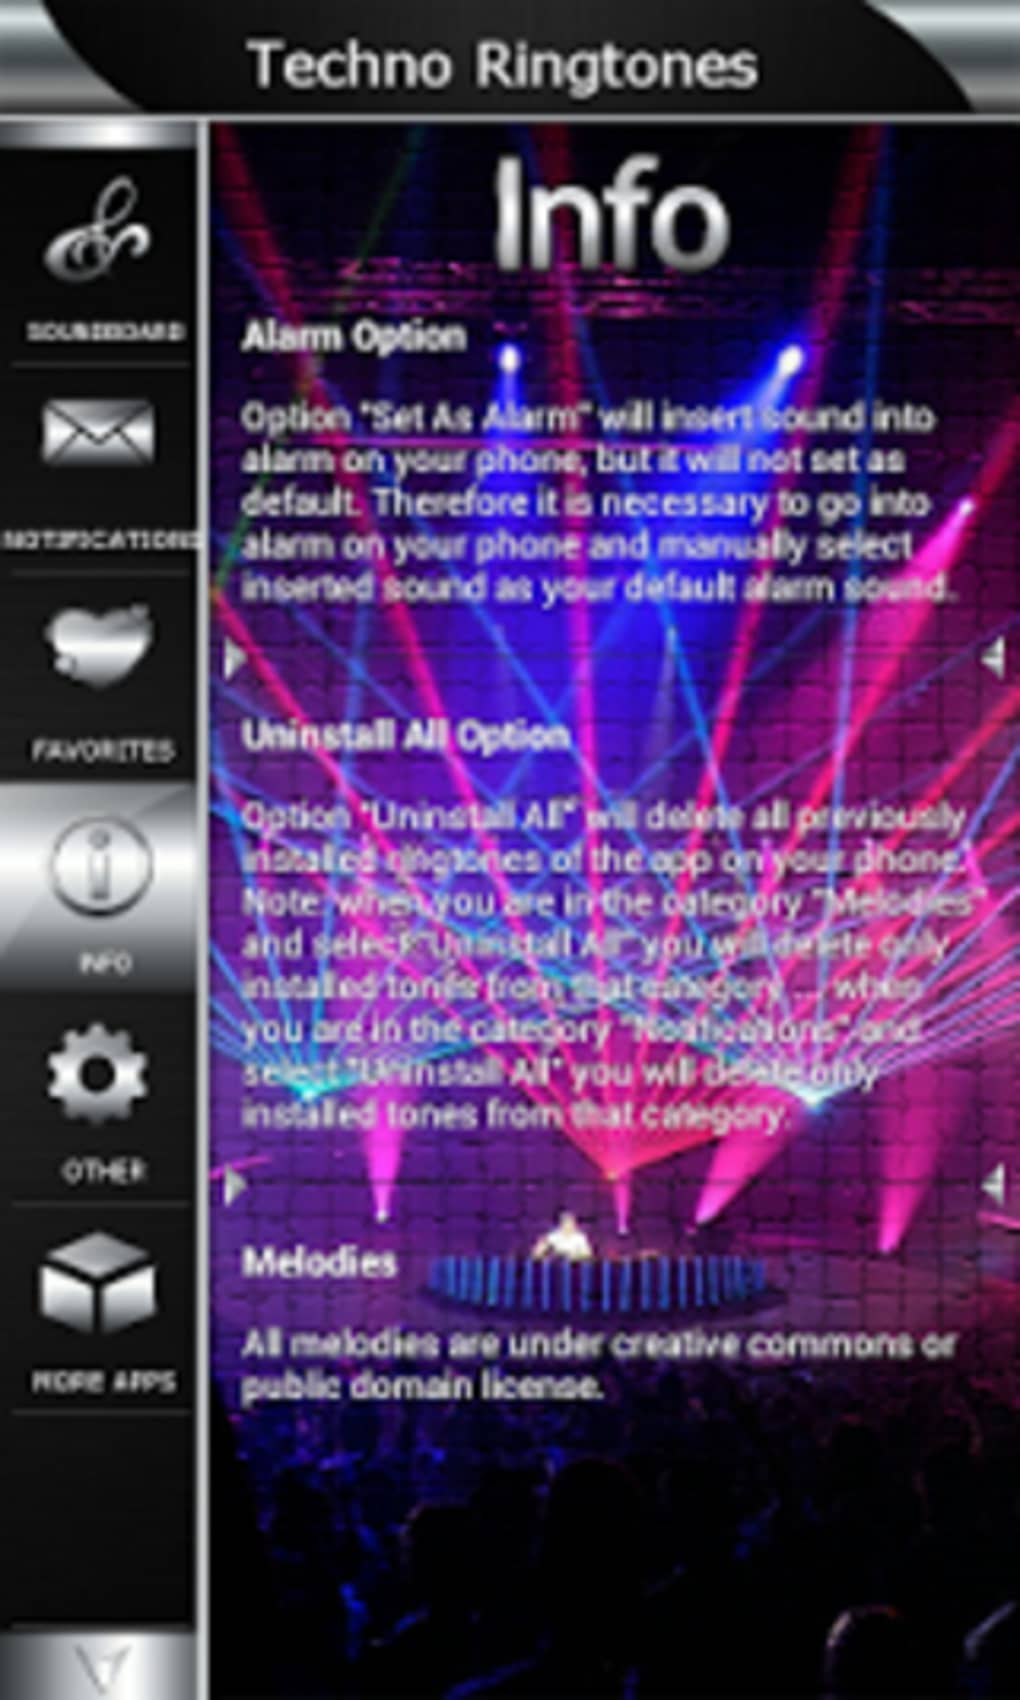 Techno Ringtones 1.2 Multimedia Androiddro